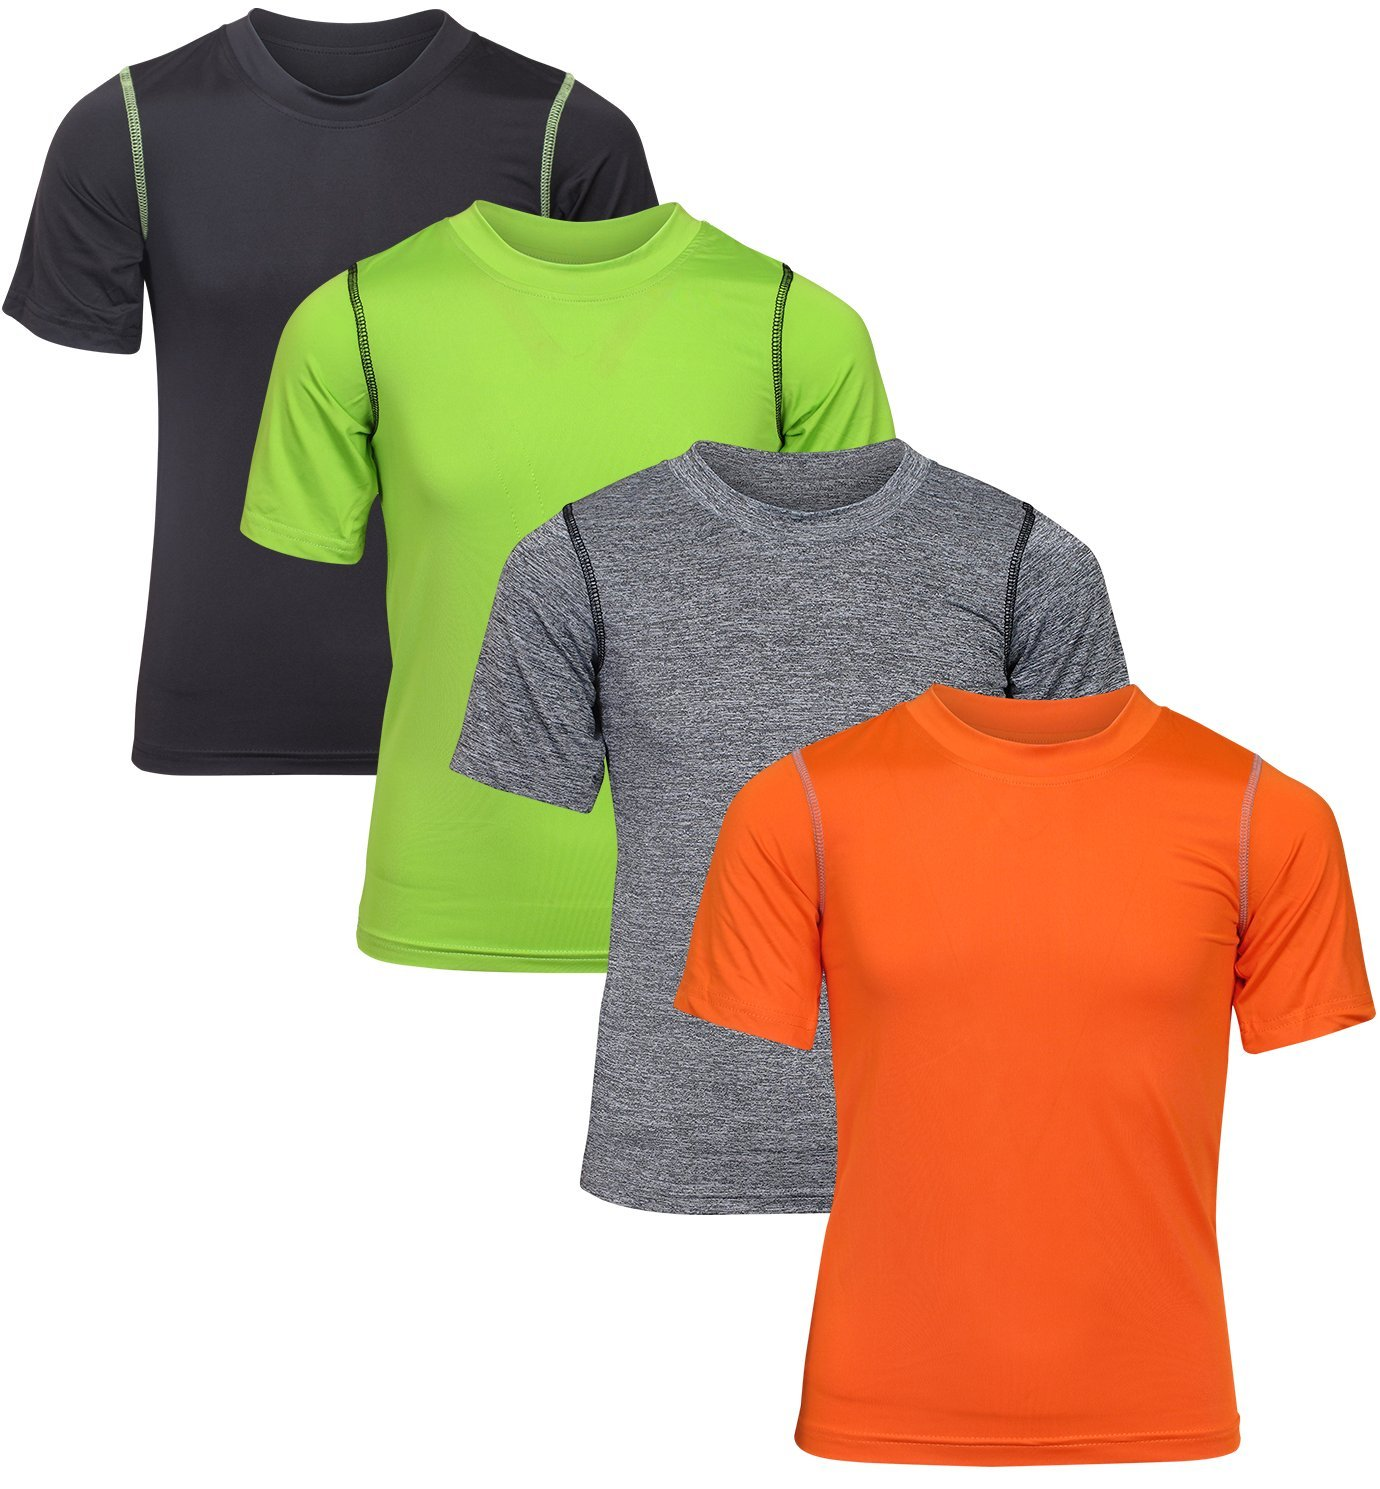 Black Bear Boy's Performance Dry-Fit T-Shirts (4 Pack) Black/Green/Grey/Orange, Large/12-14'